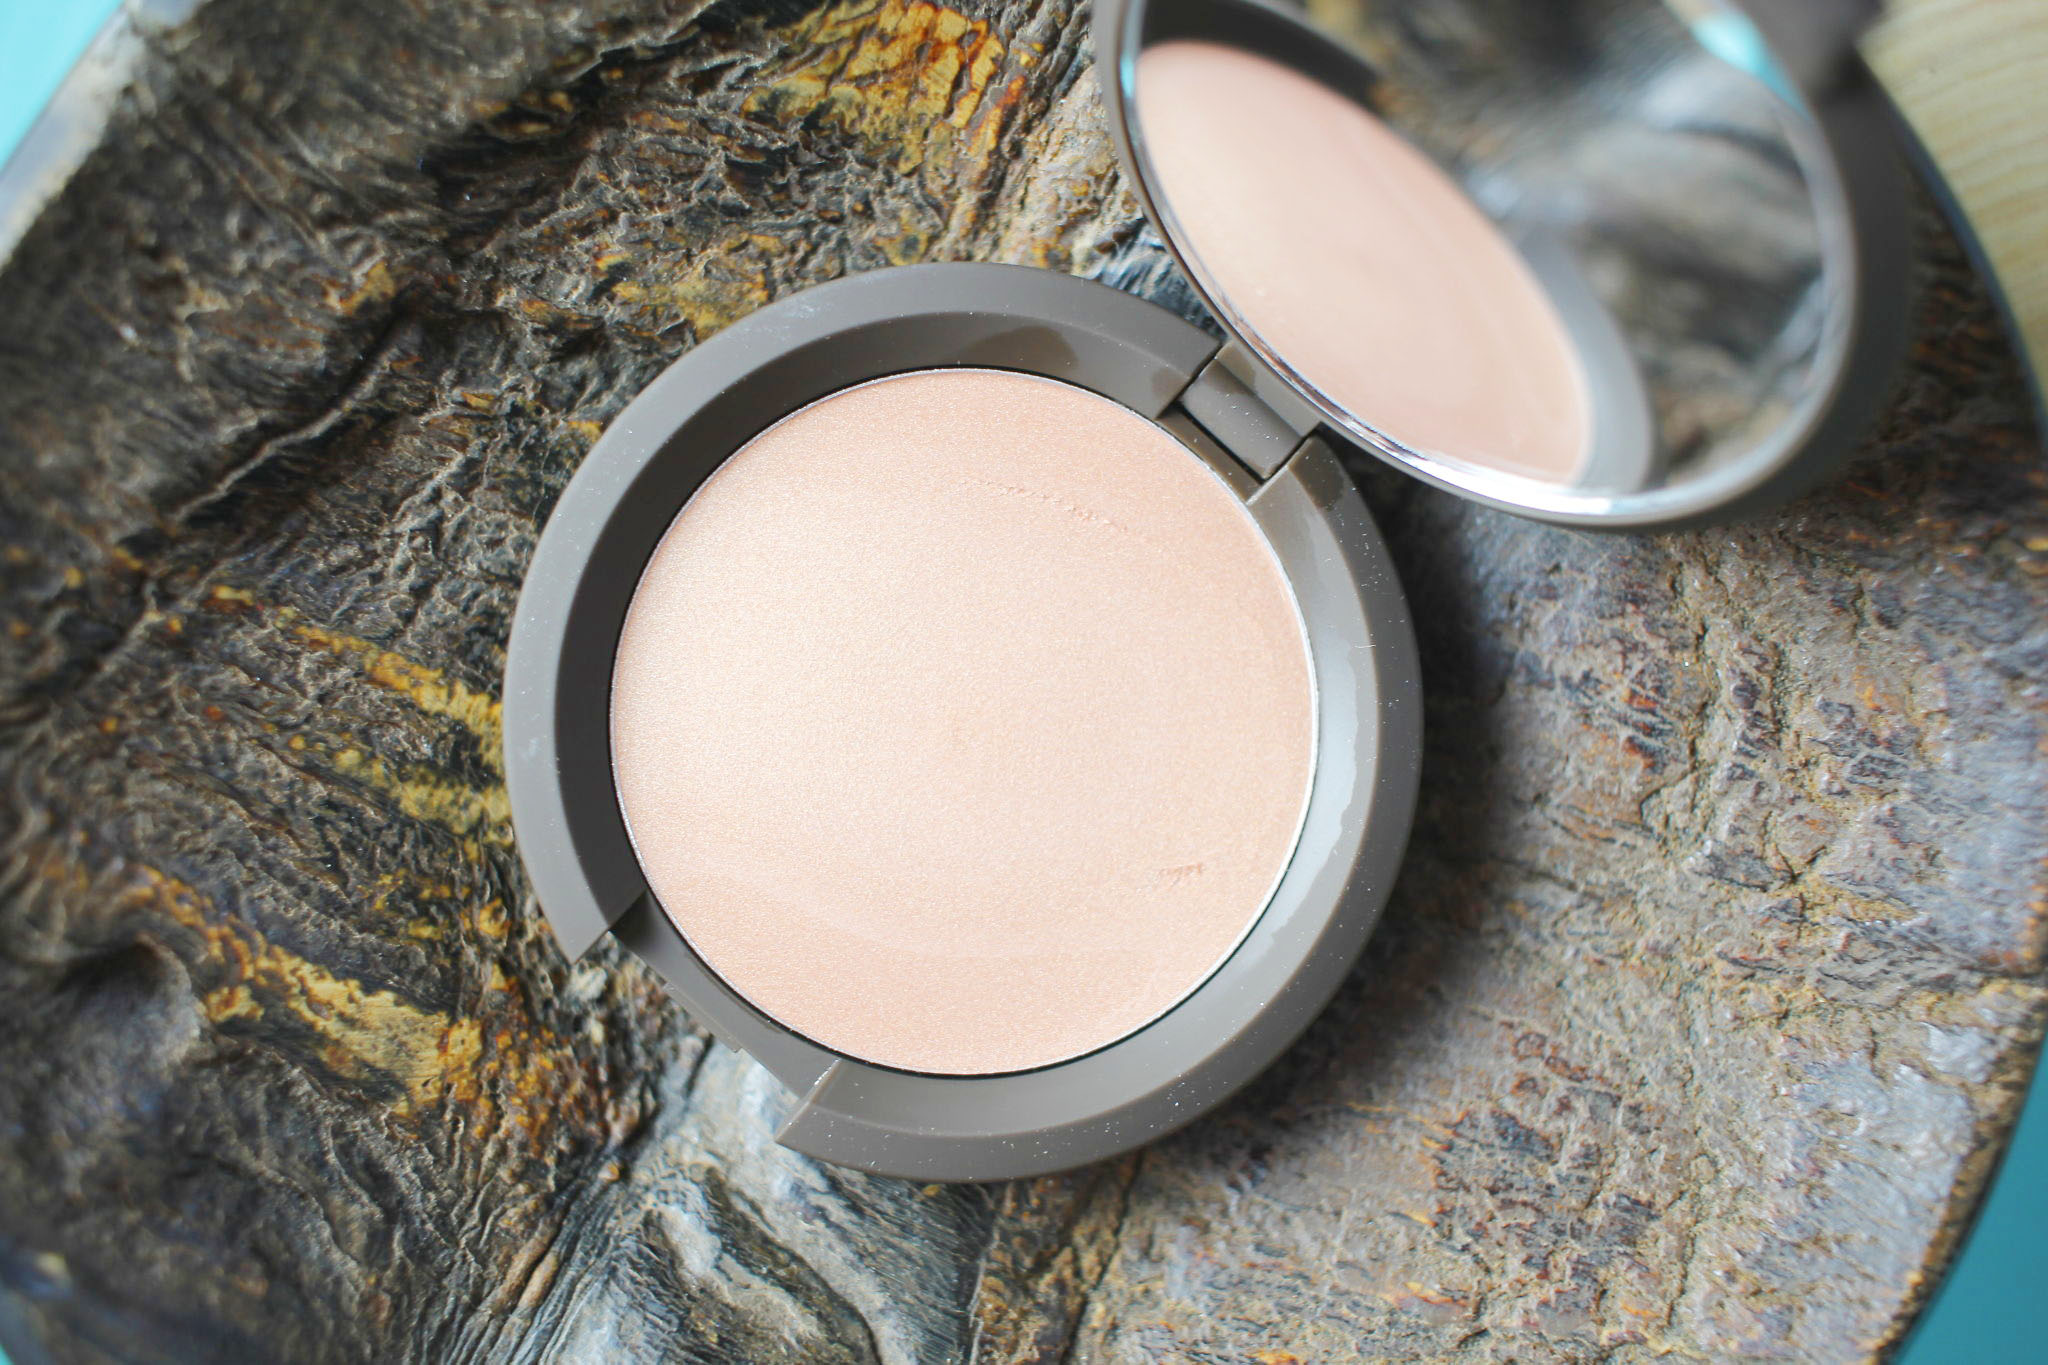 Becca x Jaclyn Hill Champagne Pop Shimmering Skin Perfector Poured